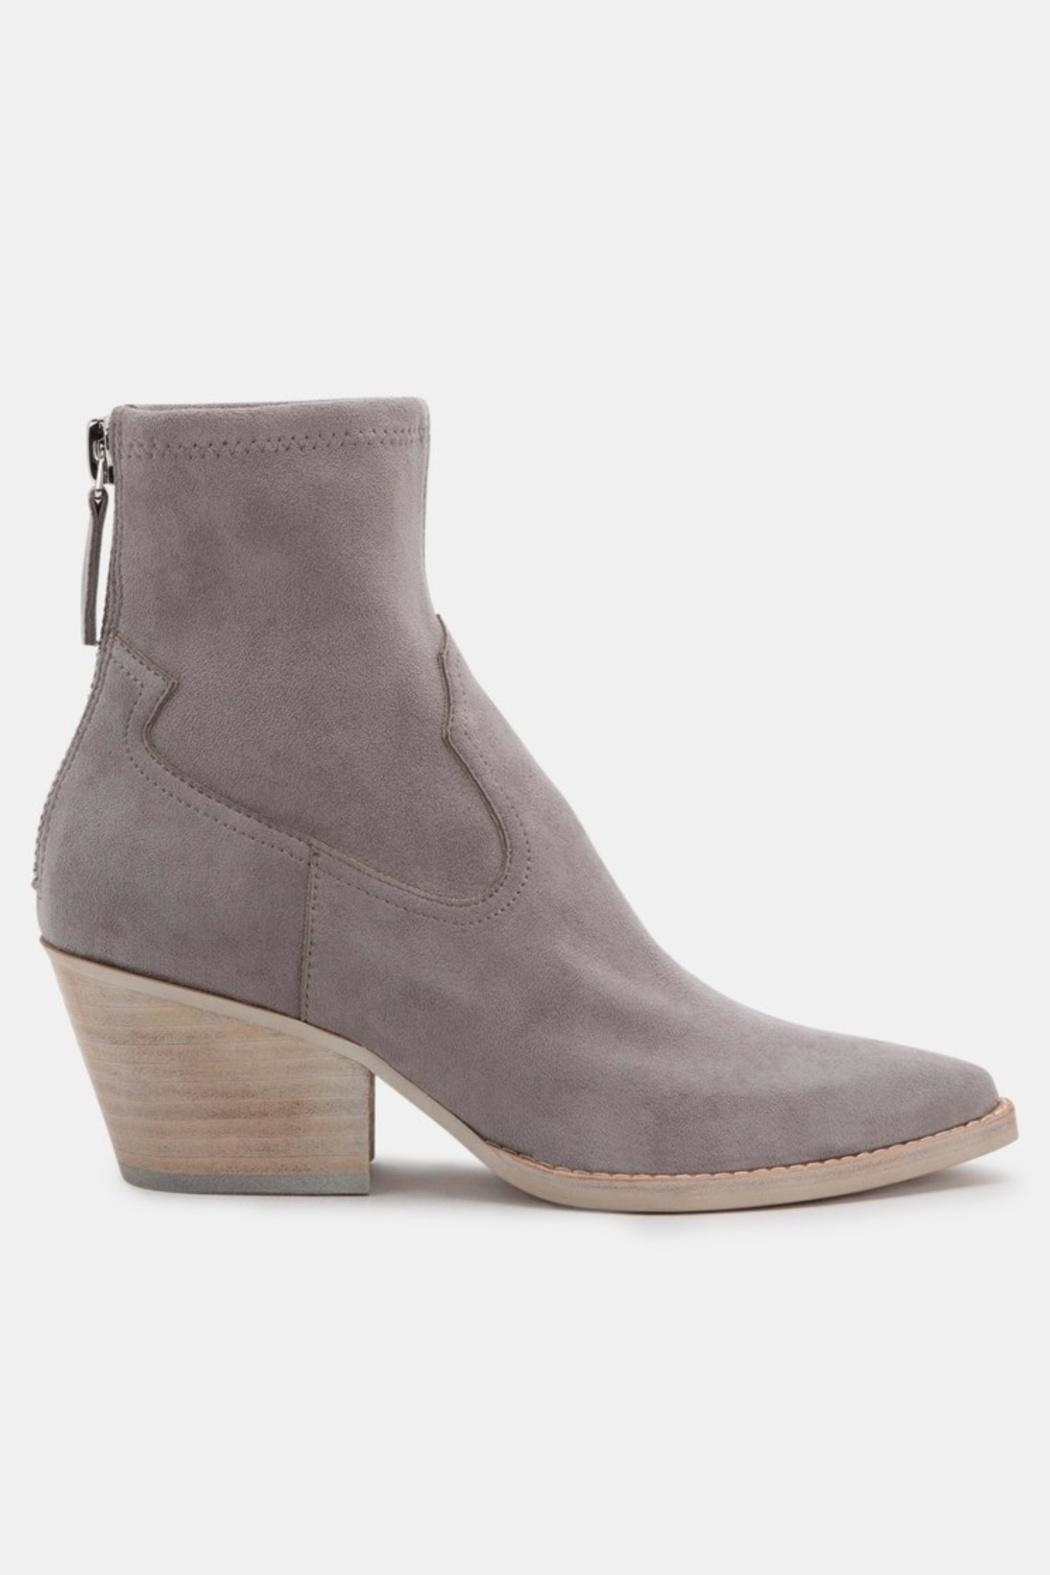 Dolce Vita Shanta Suede Booties - Front Full Image